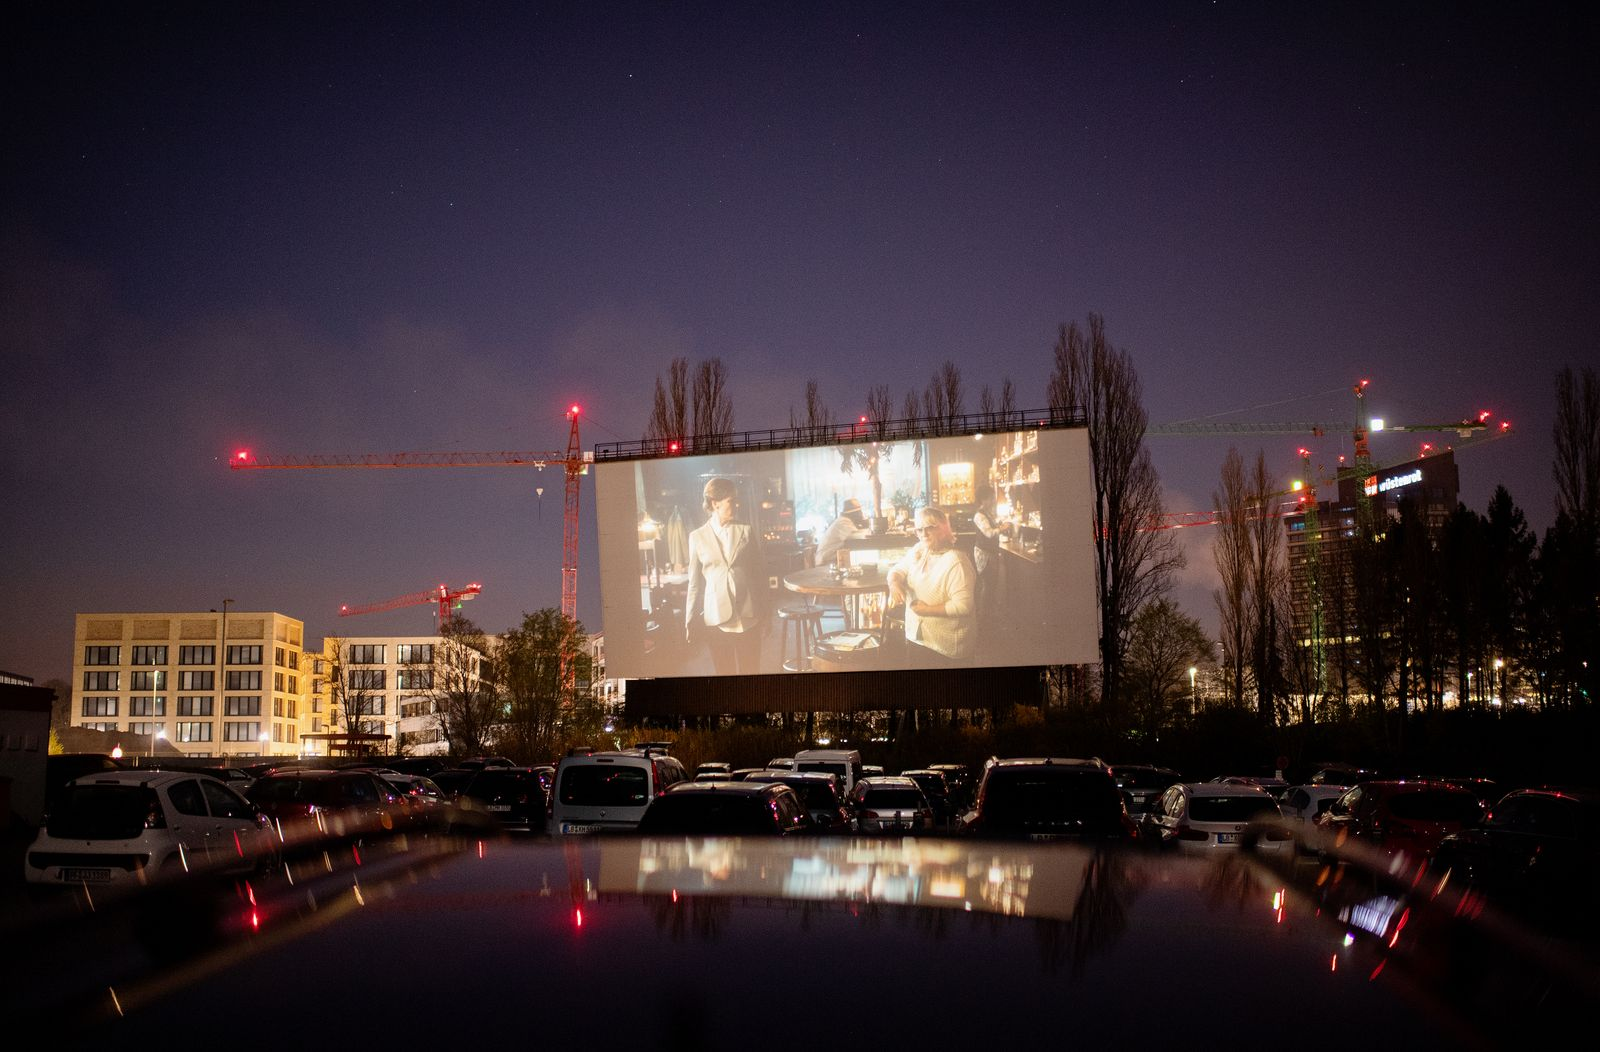 Drive-In Cinemas Have Booming Business During The Coronavirus Crisis